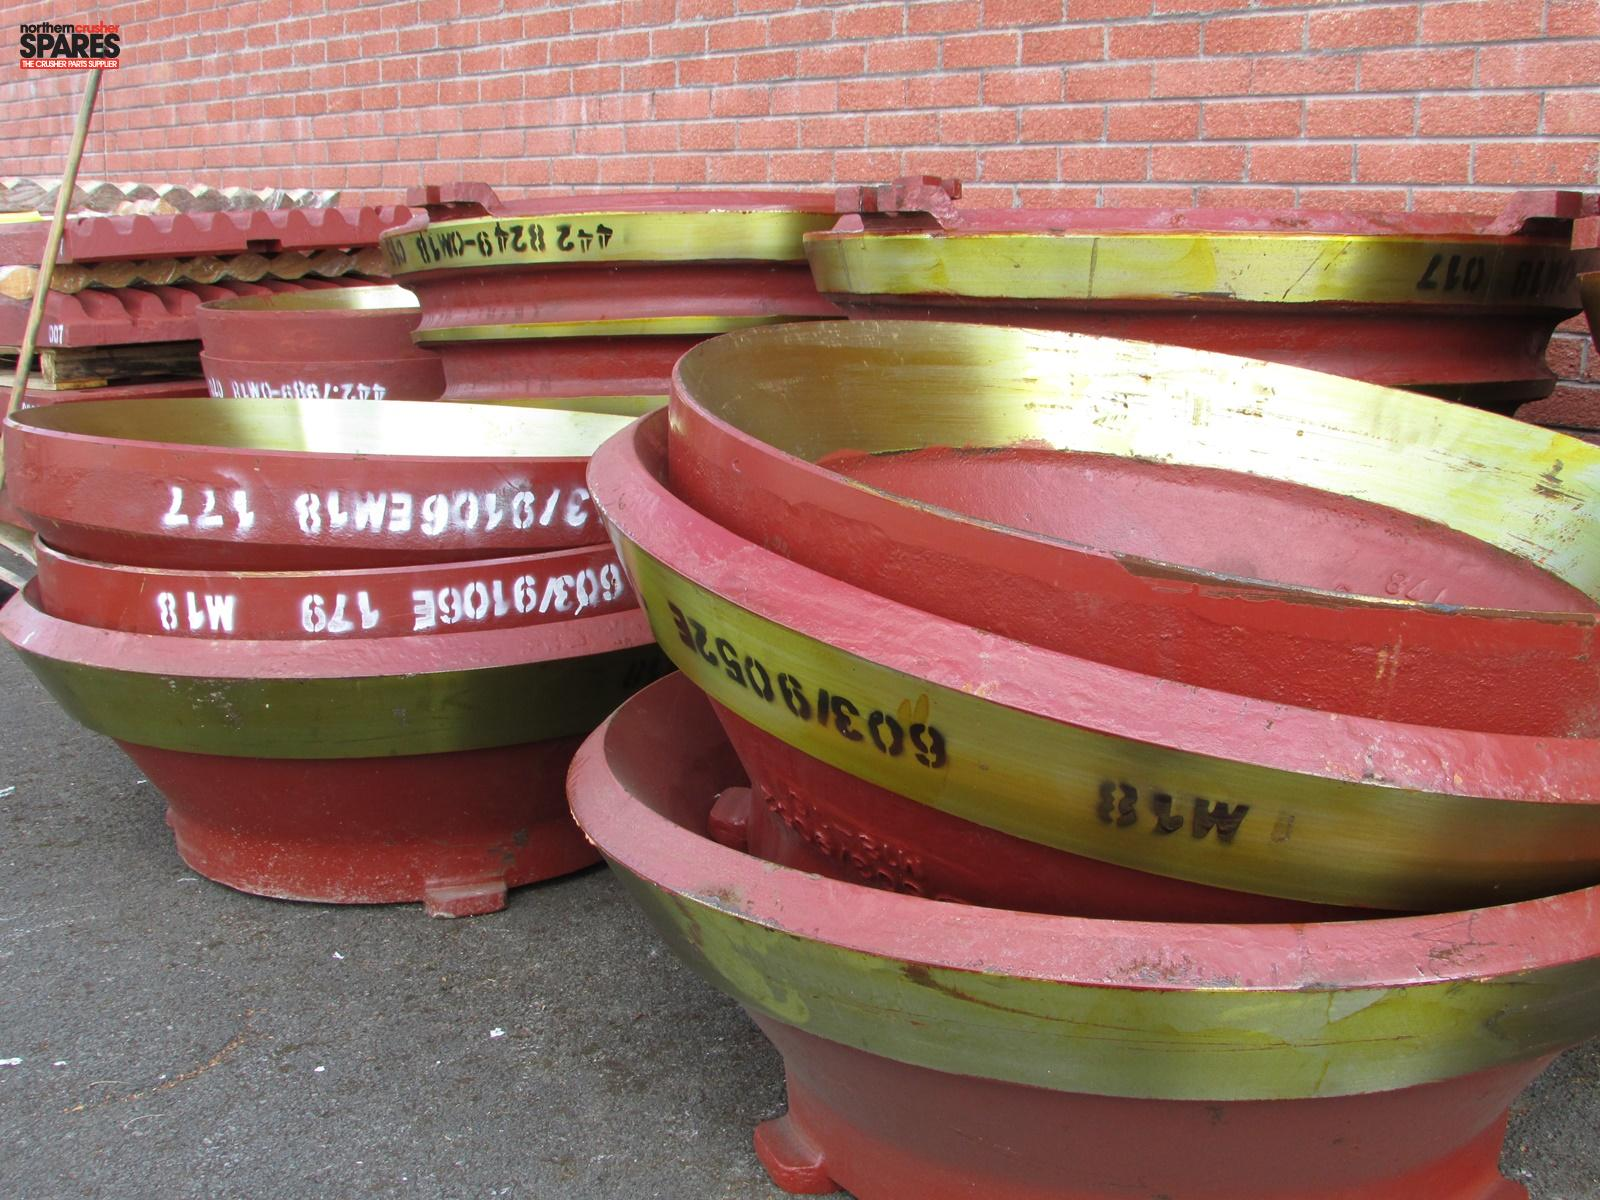 603/9106 Pegson 1000 Cone Mantel   Northern Crusher Spares